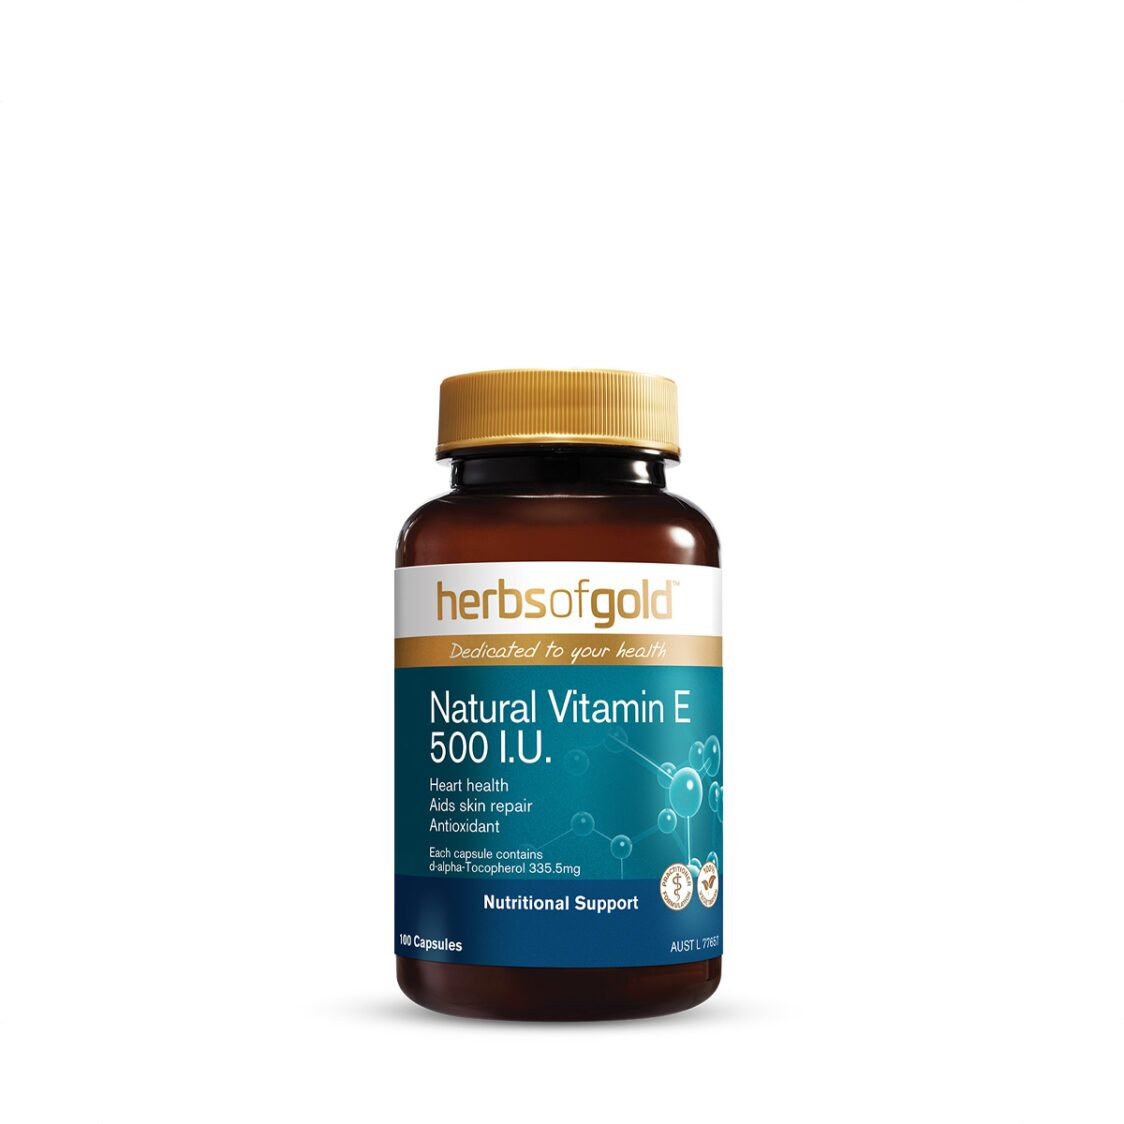 Natural Vitamin E 500 IU